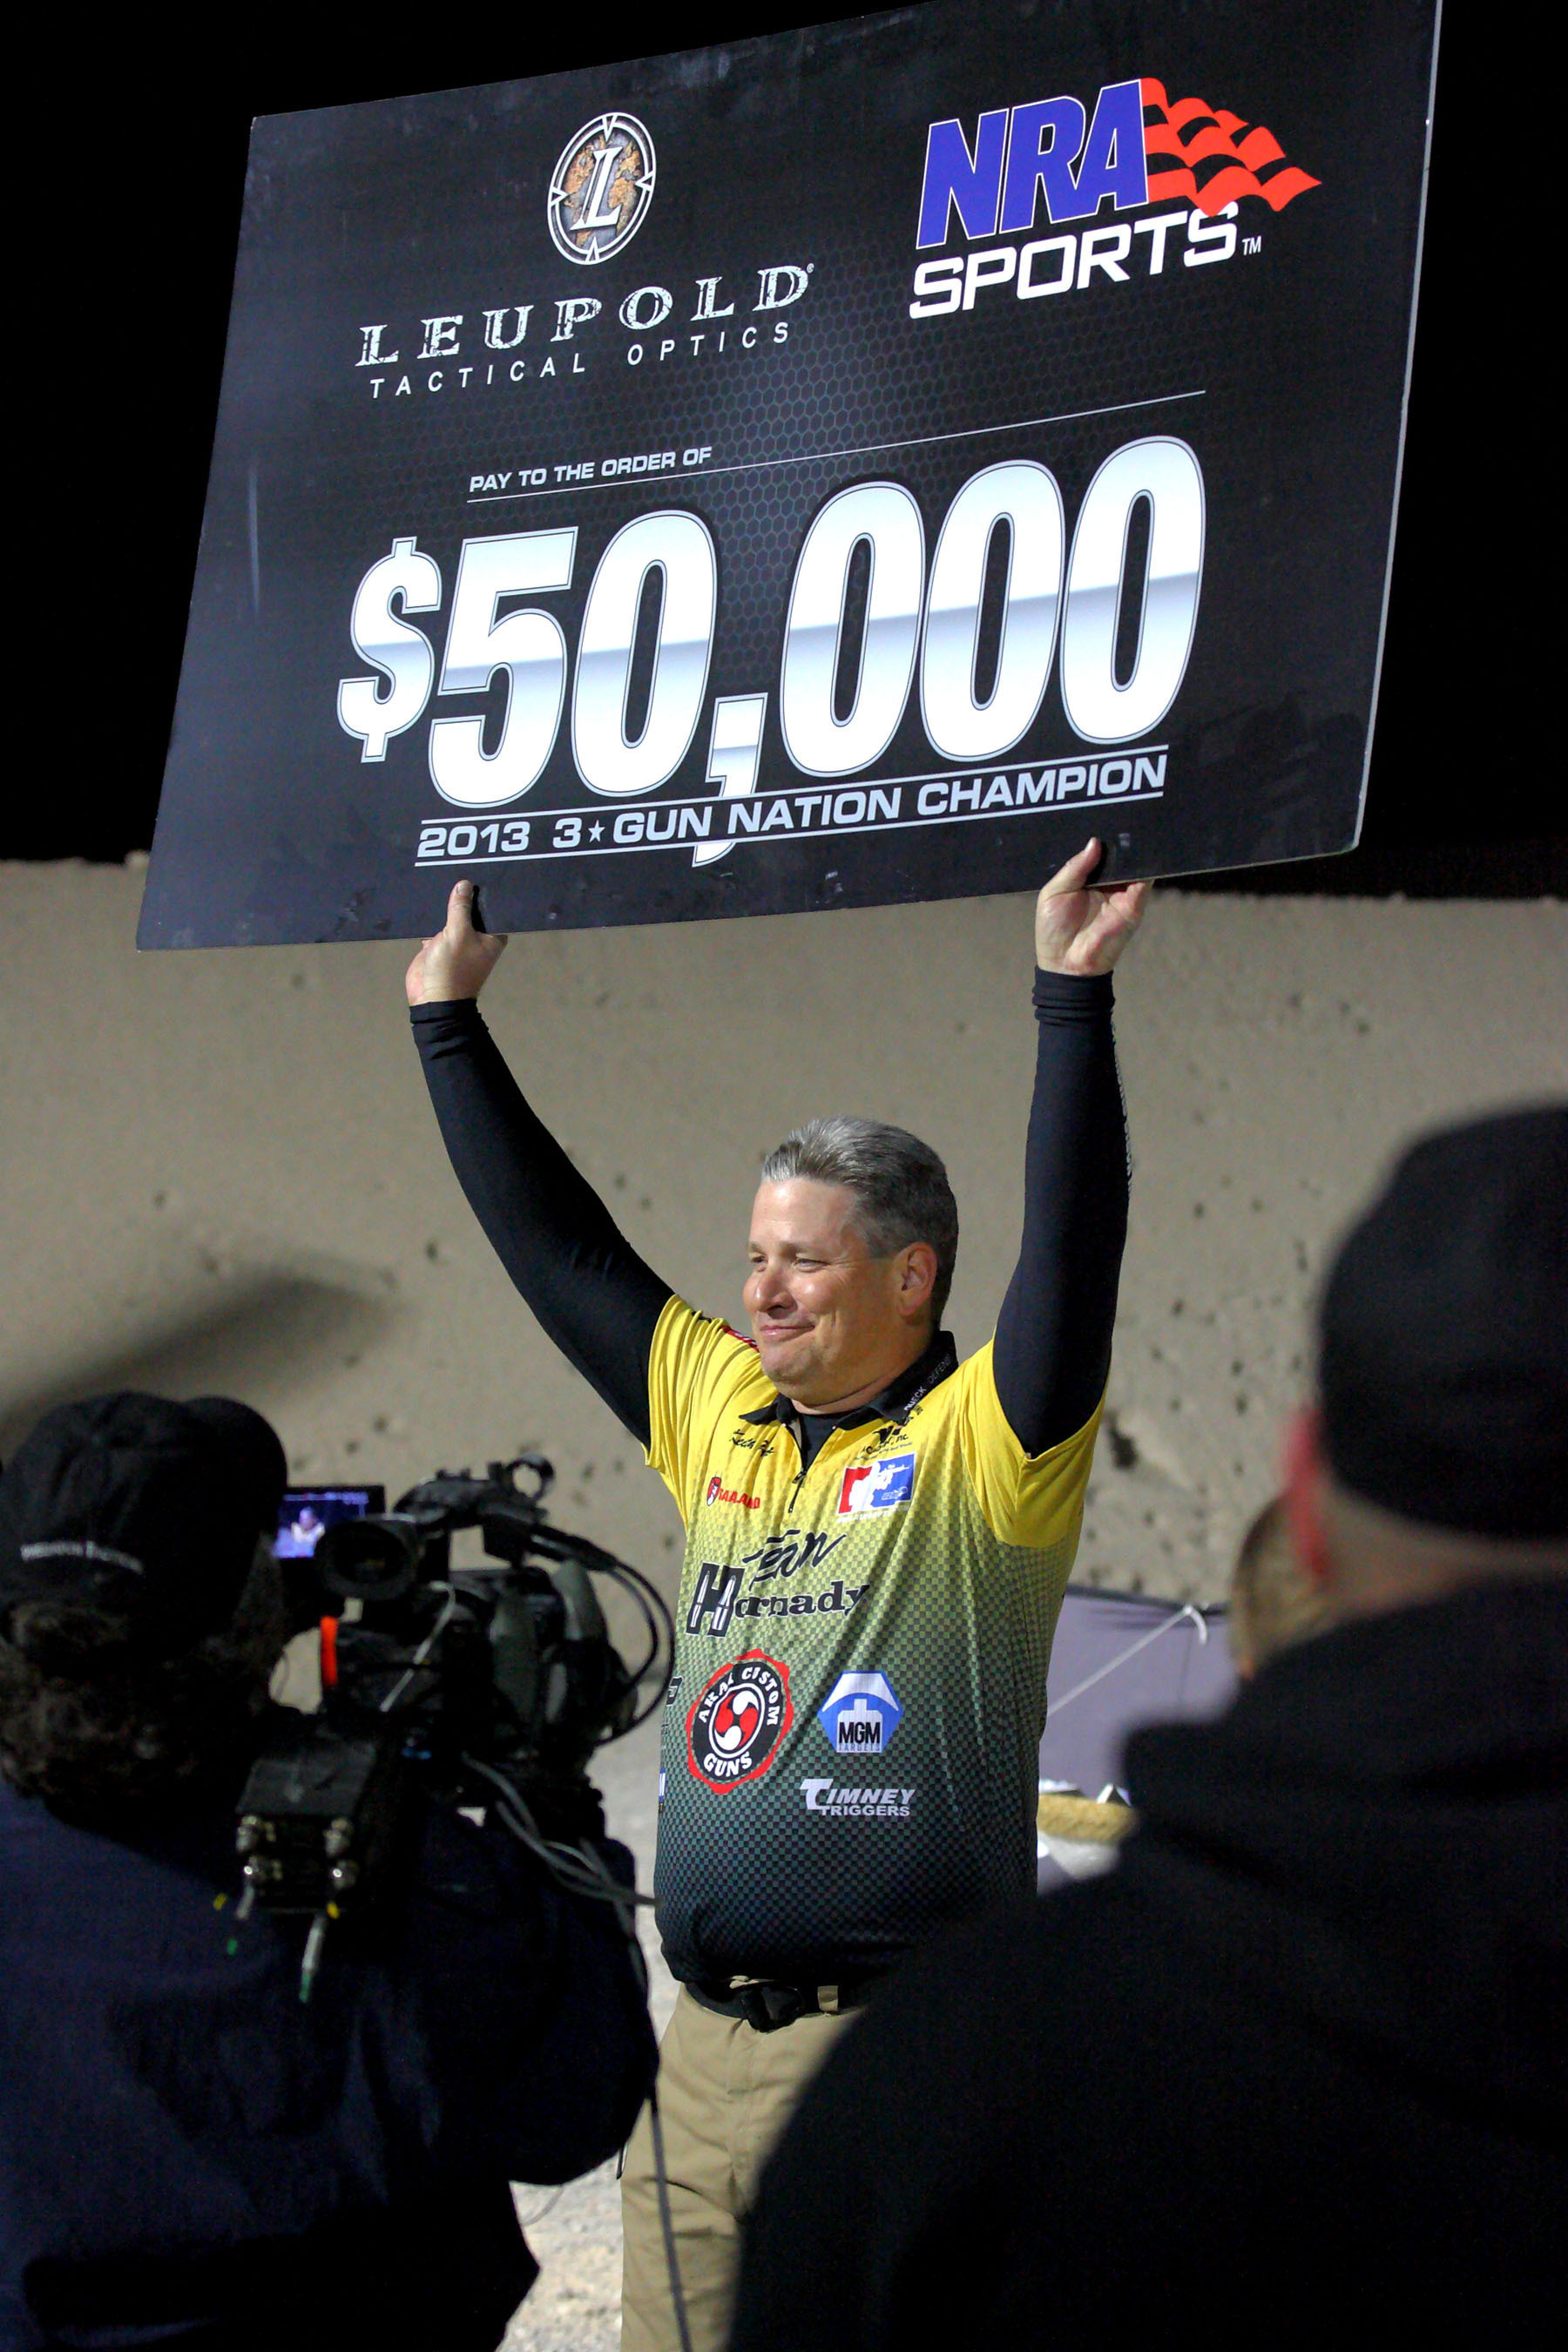 Keith Garcia, a law enforcement officer from San Ramon, California, took home the 3-Gun Nation championship and a $50,000 payday from Leupold Tactical Optics and NRA Sports.   (PRNewsFoto/3-Gun Nation)